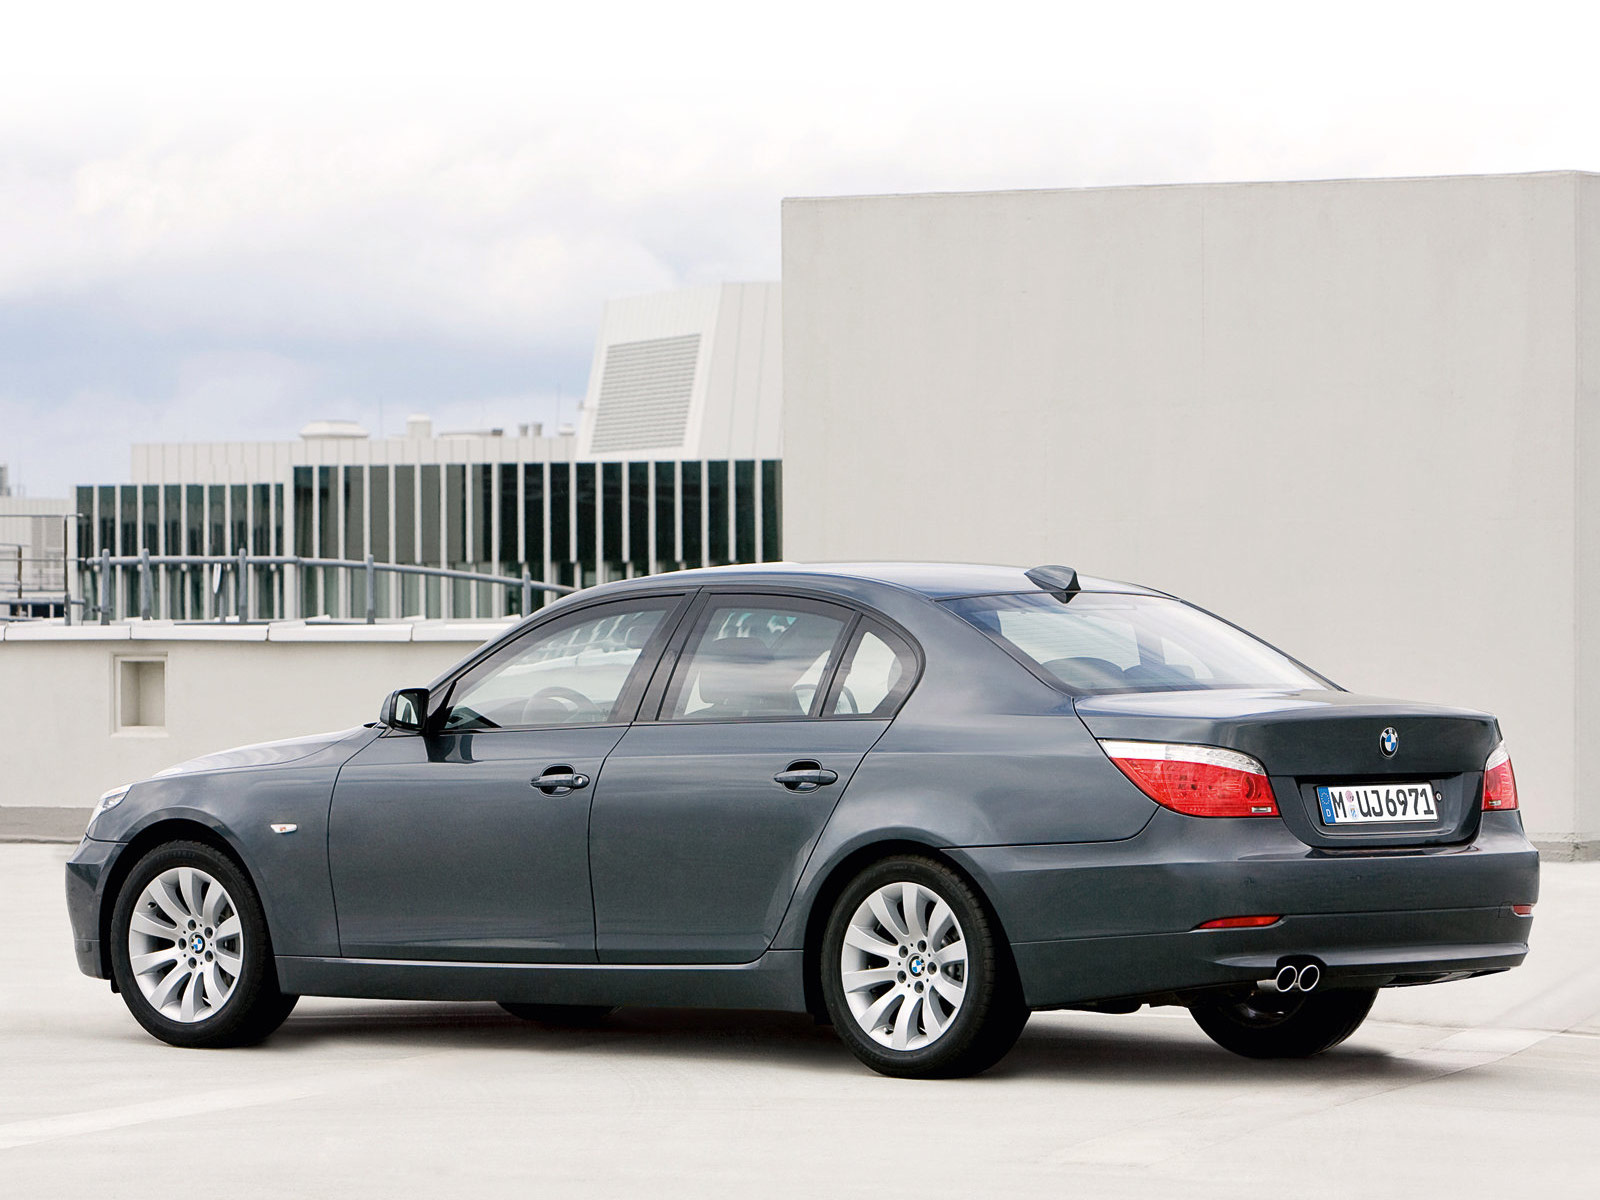 2008 BMW 5-Series Security car pictures